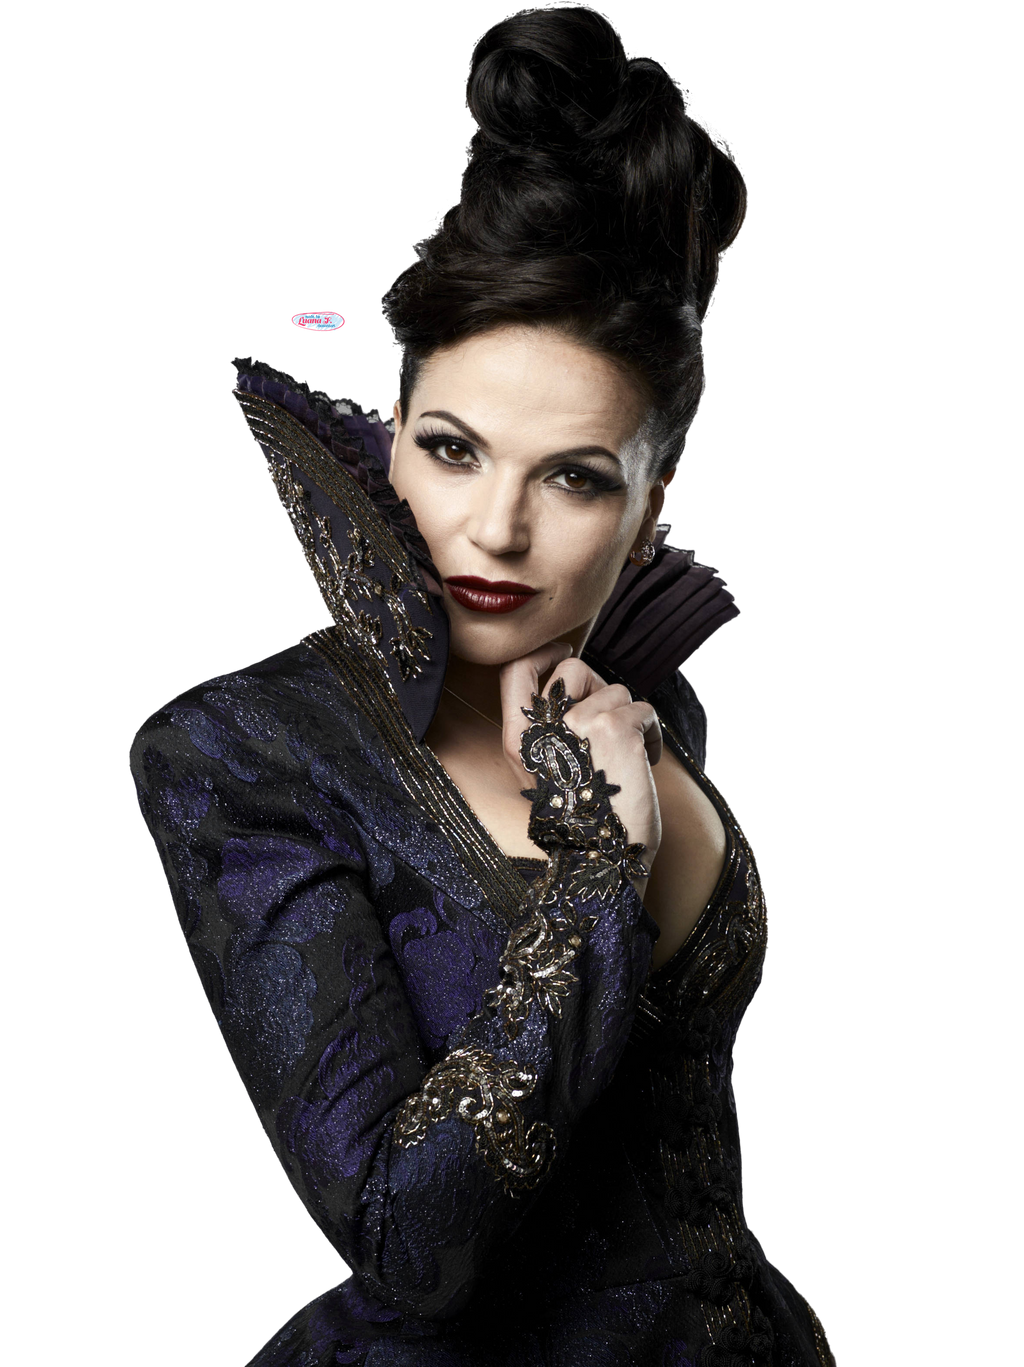 PNG: Evil Queen - Once upon a Time by LuanaF on DeviantArt